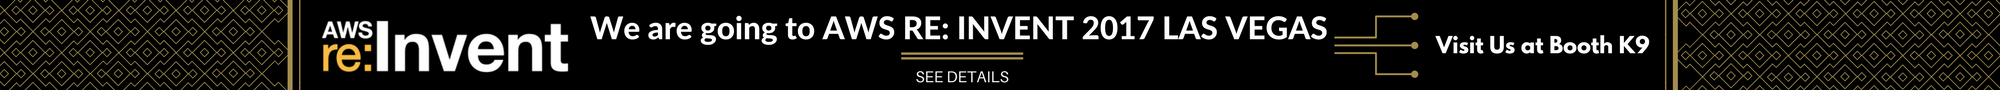 WE ARE GOING TO AWS RE-INVENT 2017 LAS VEGAS